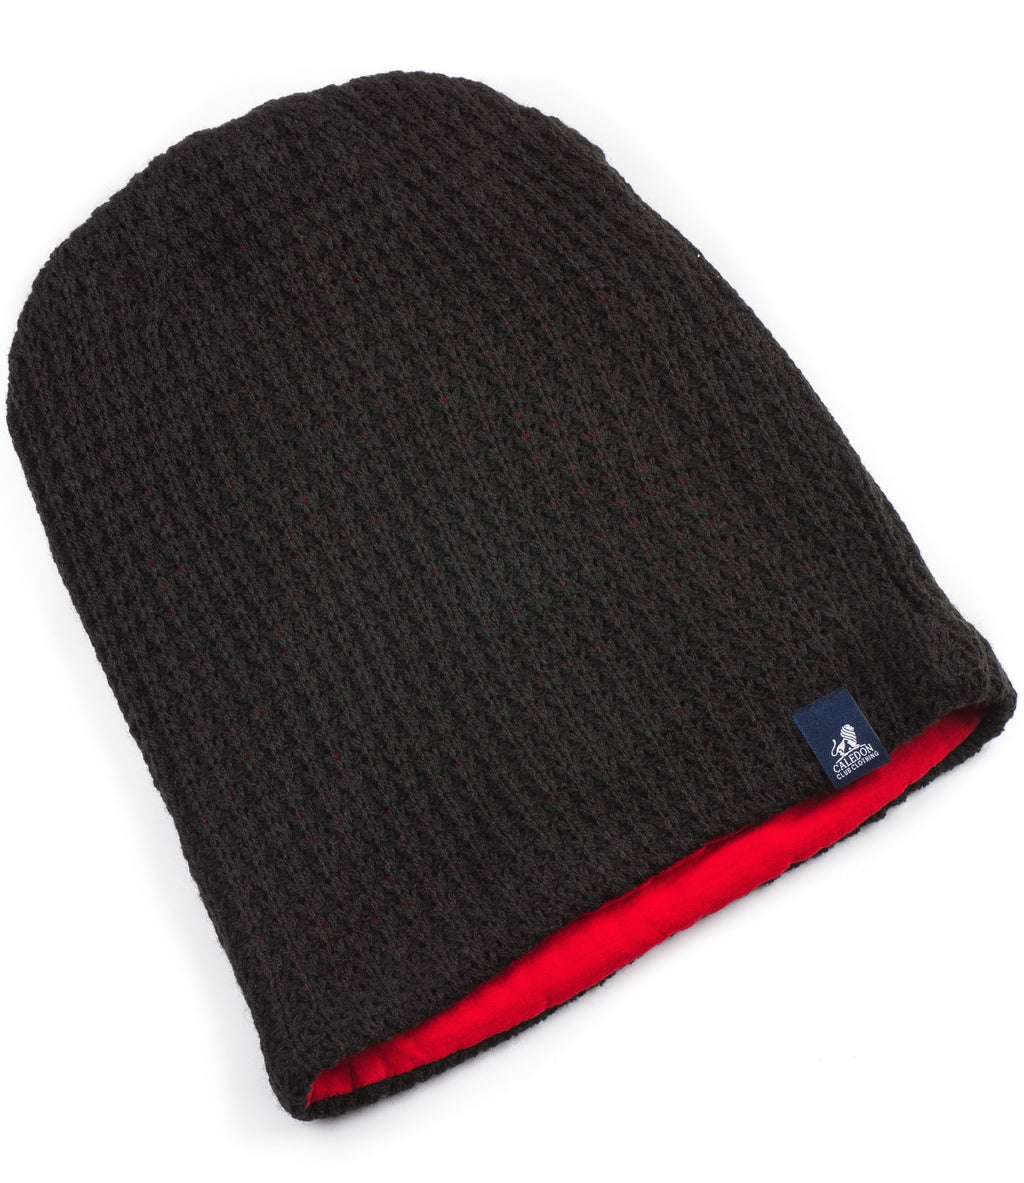 Childs Oversized Black Knitted Beanie with Red Lining